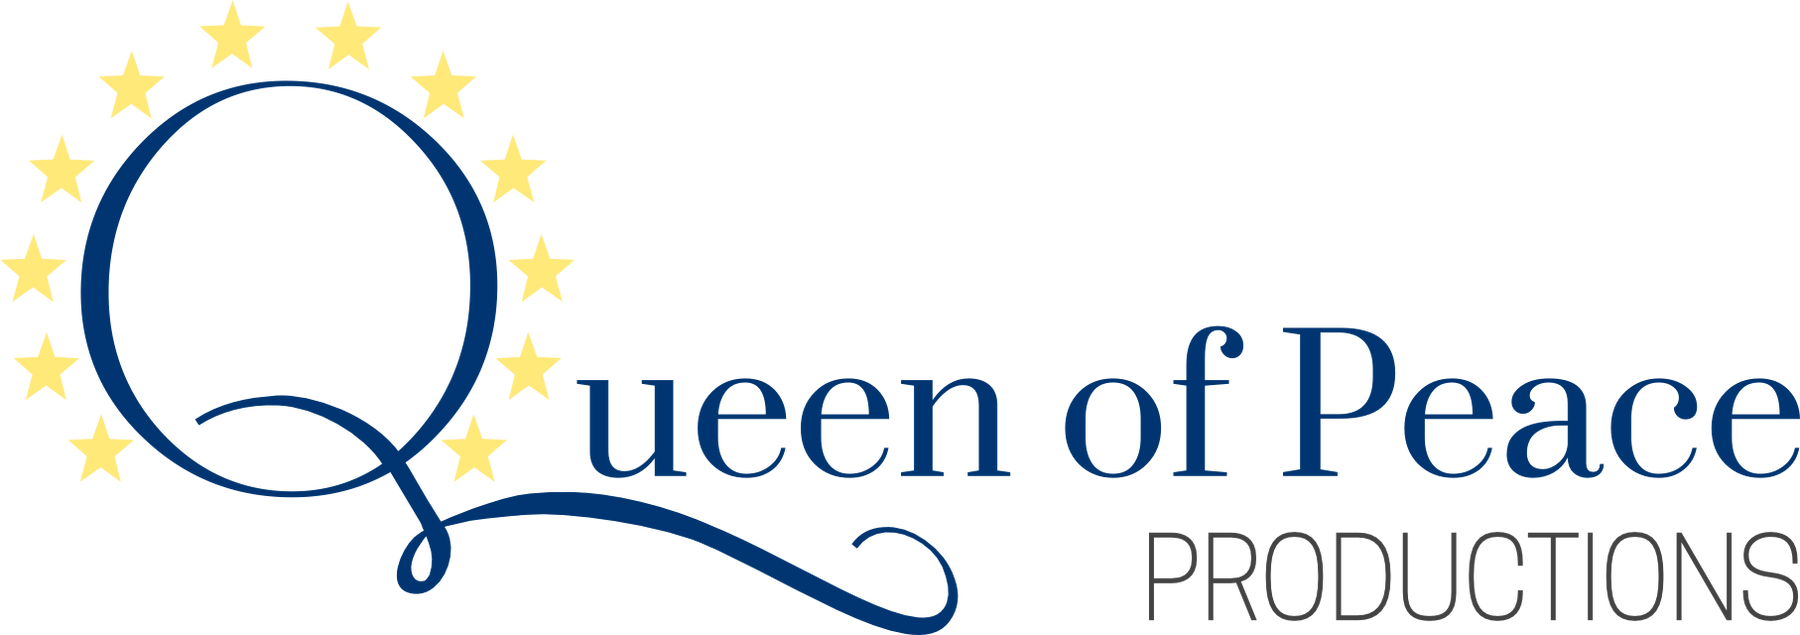 Donation to Queen of Peace Productions